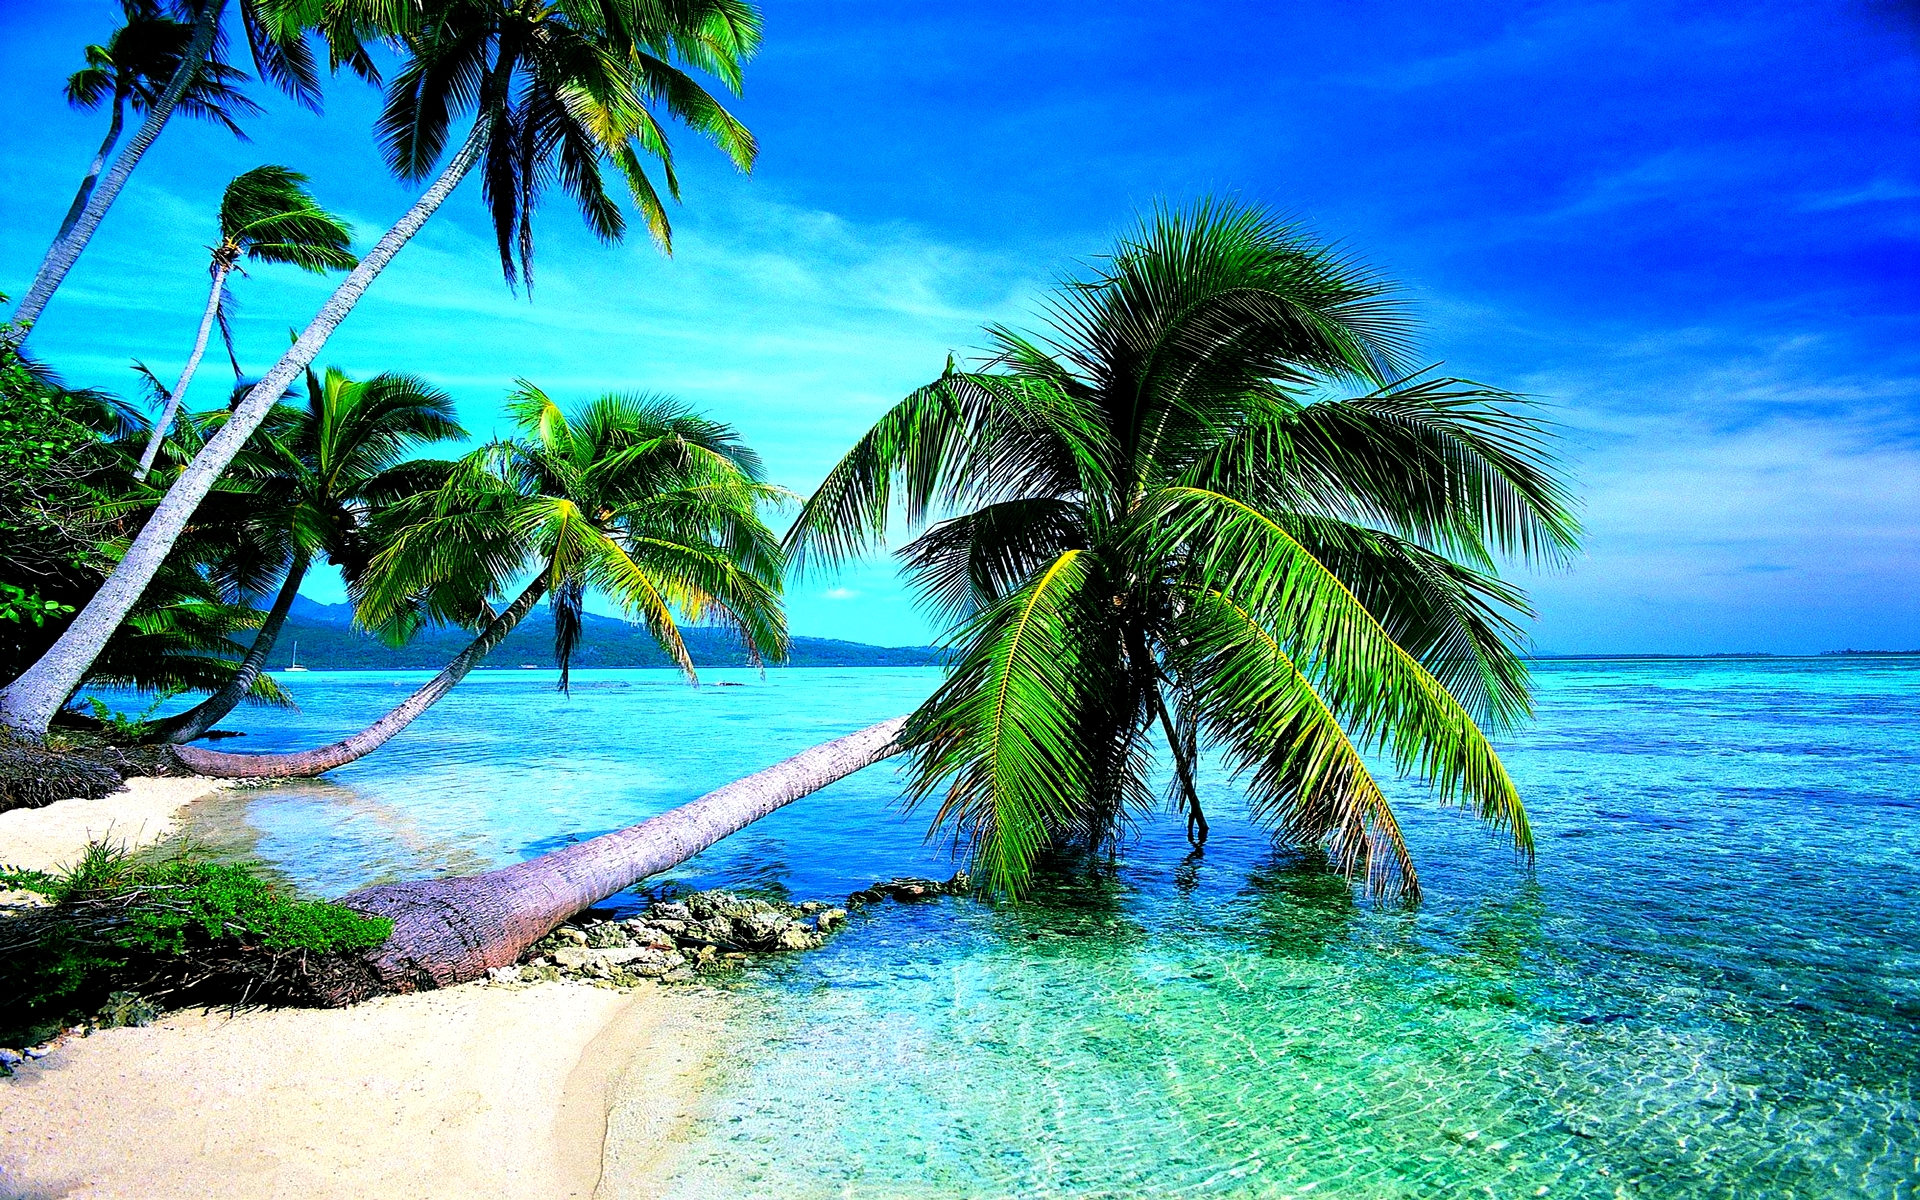 Beach HD Wallpapers Desktop Pictures | One HD Wallpaper Pictures ...